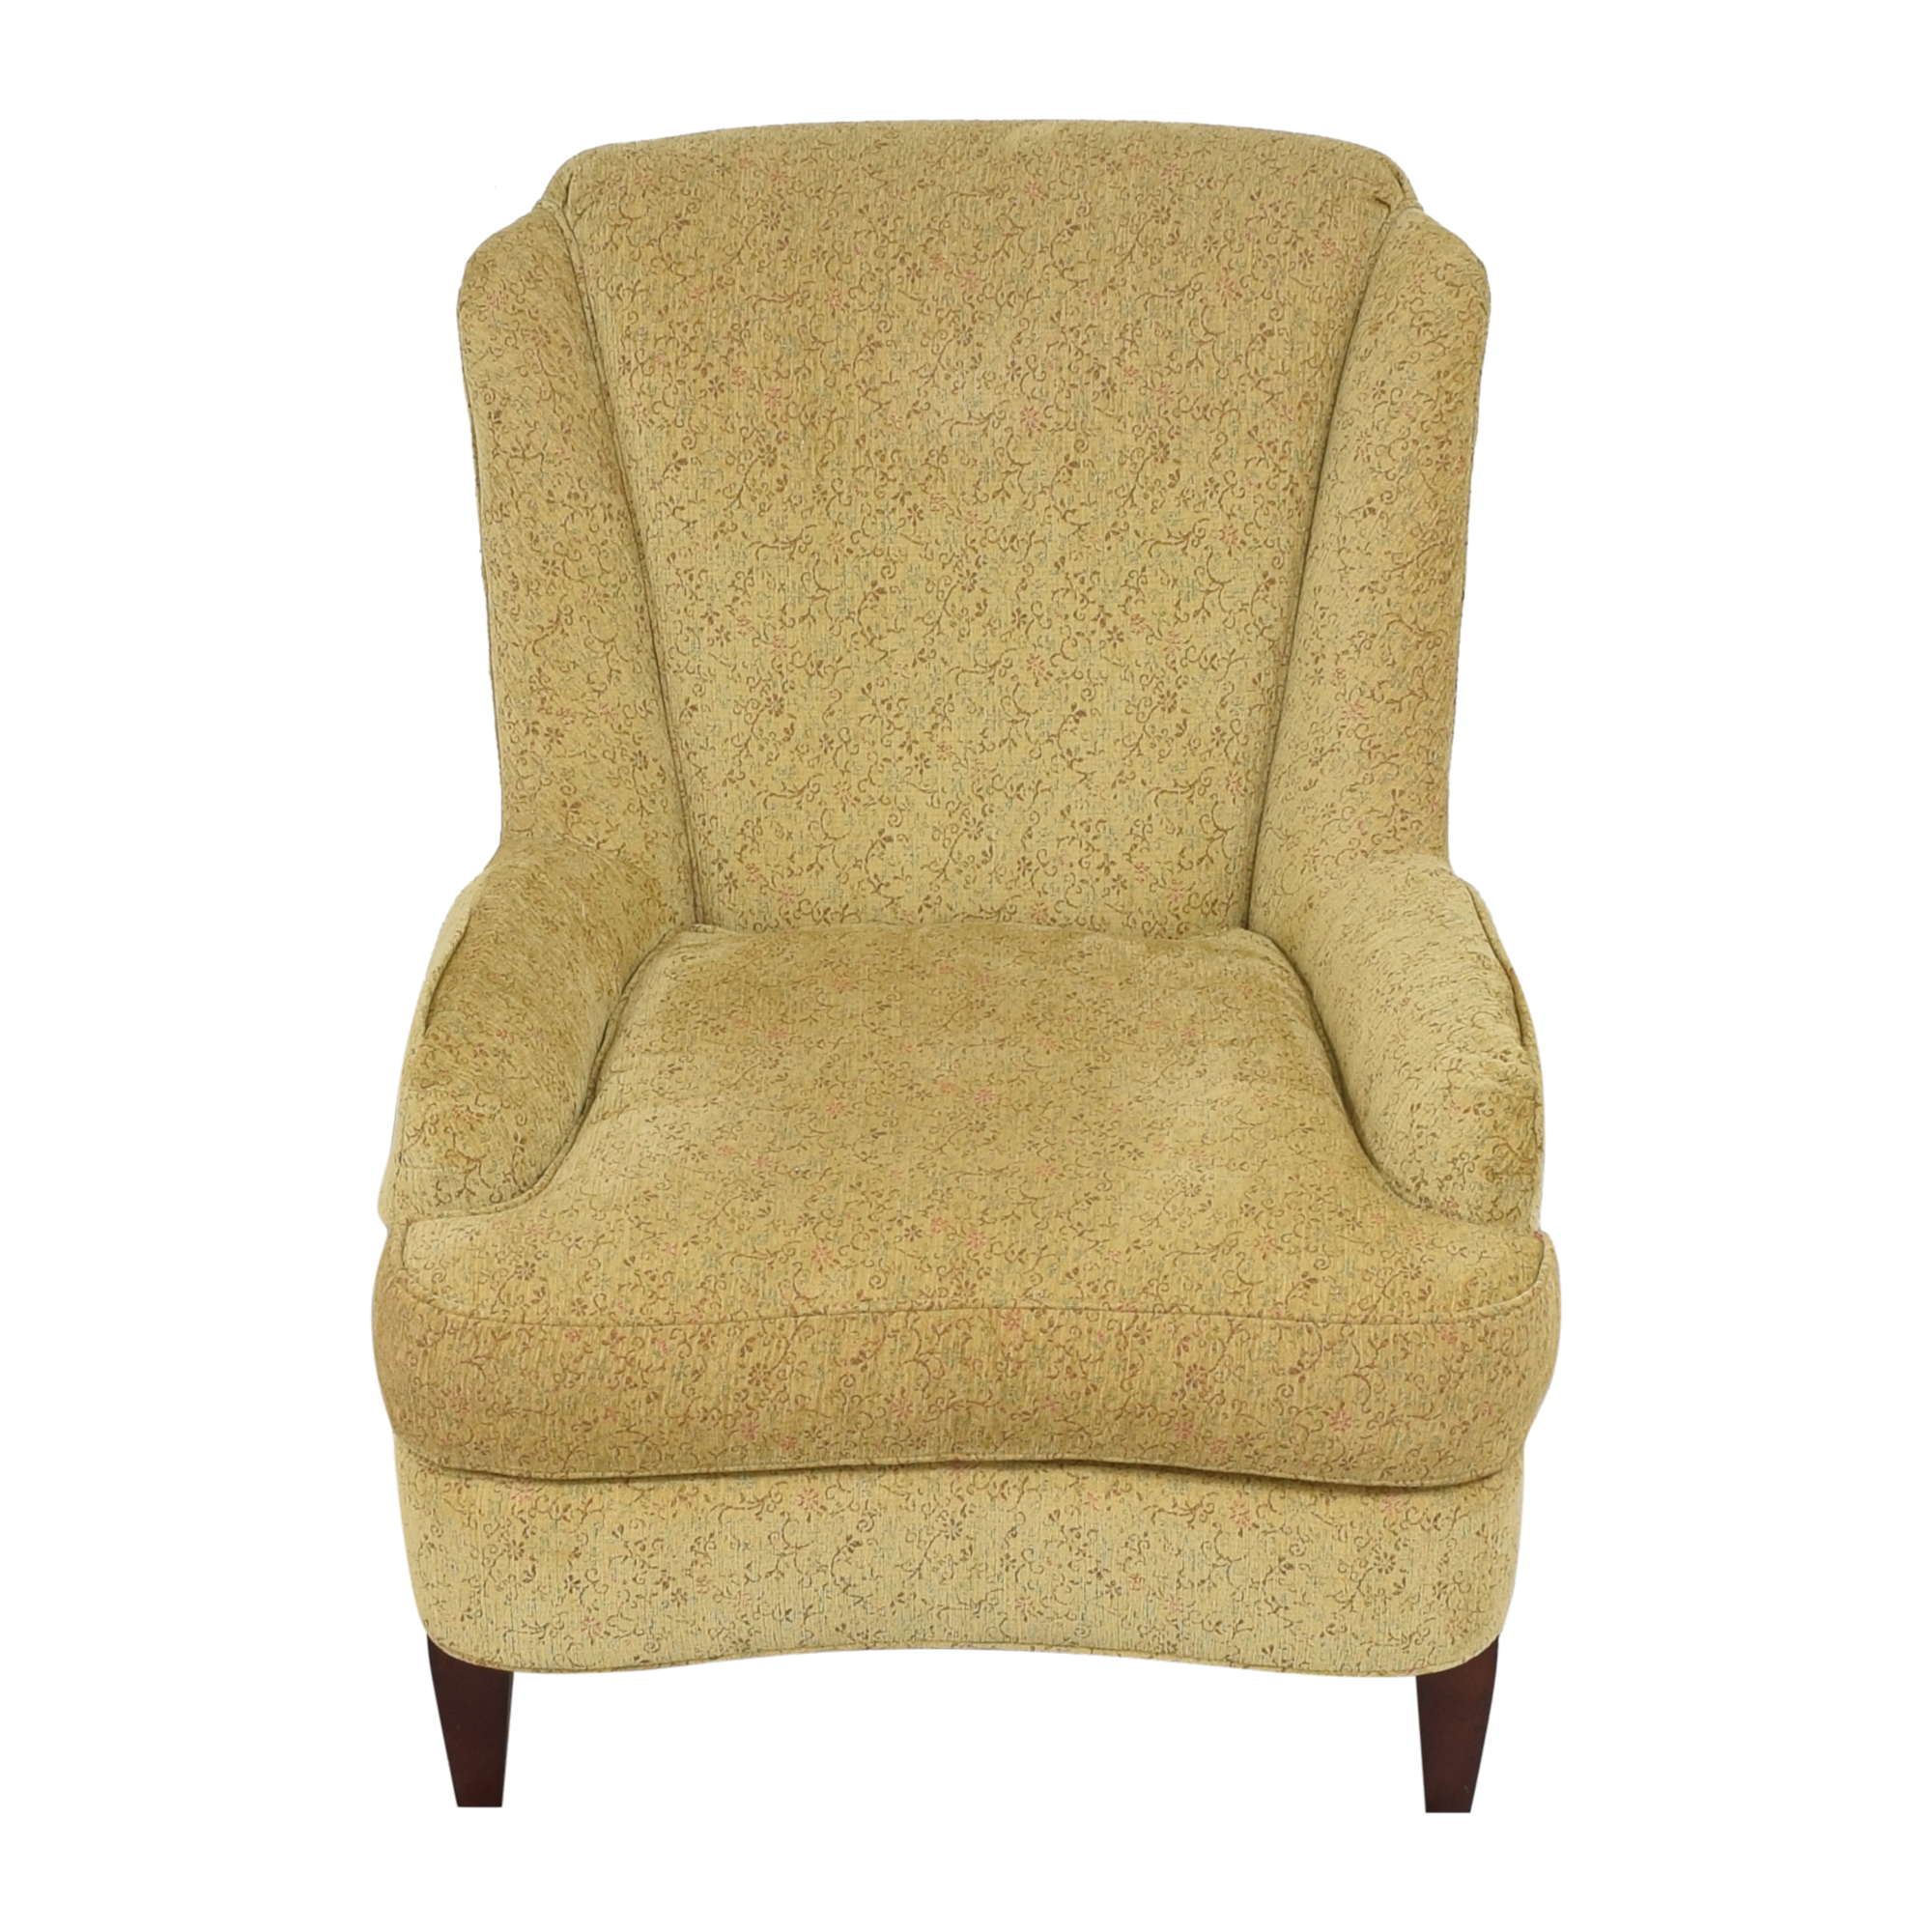 Beacon Hill Collection Beacon Hill Collection Accent Chair ct